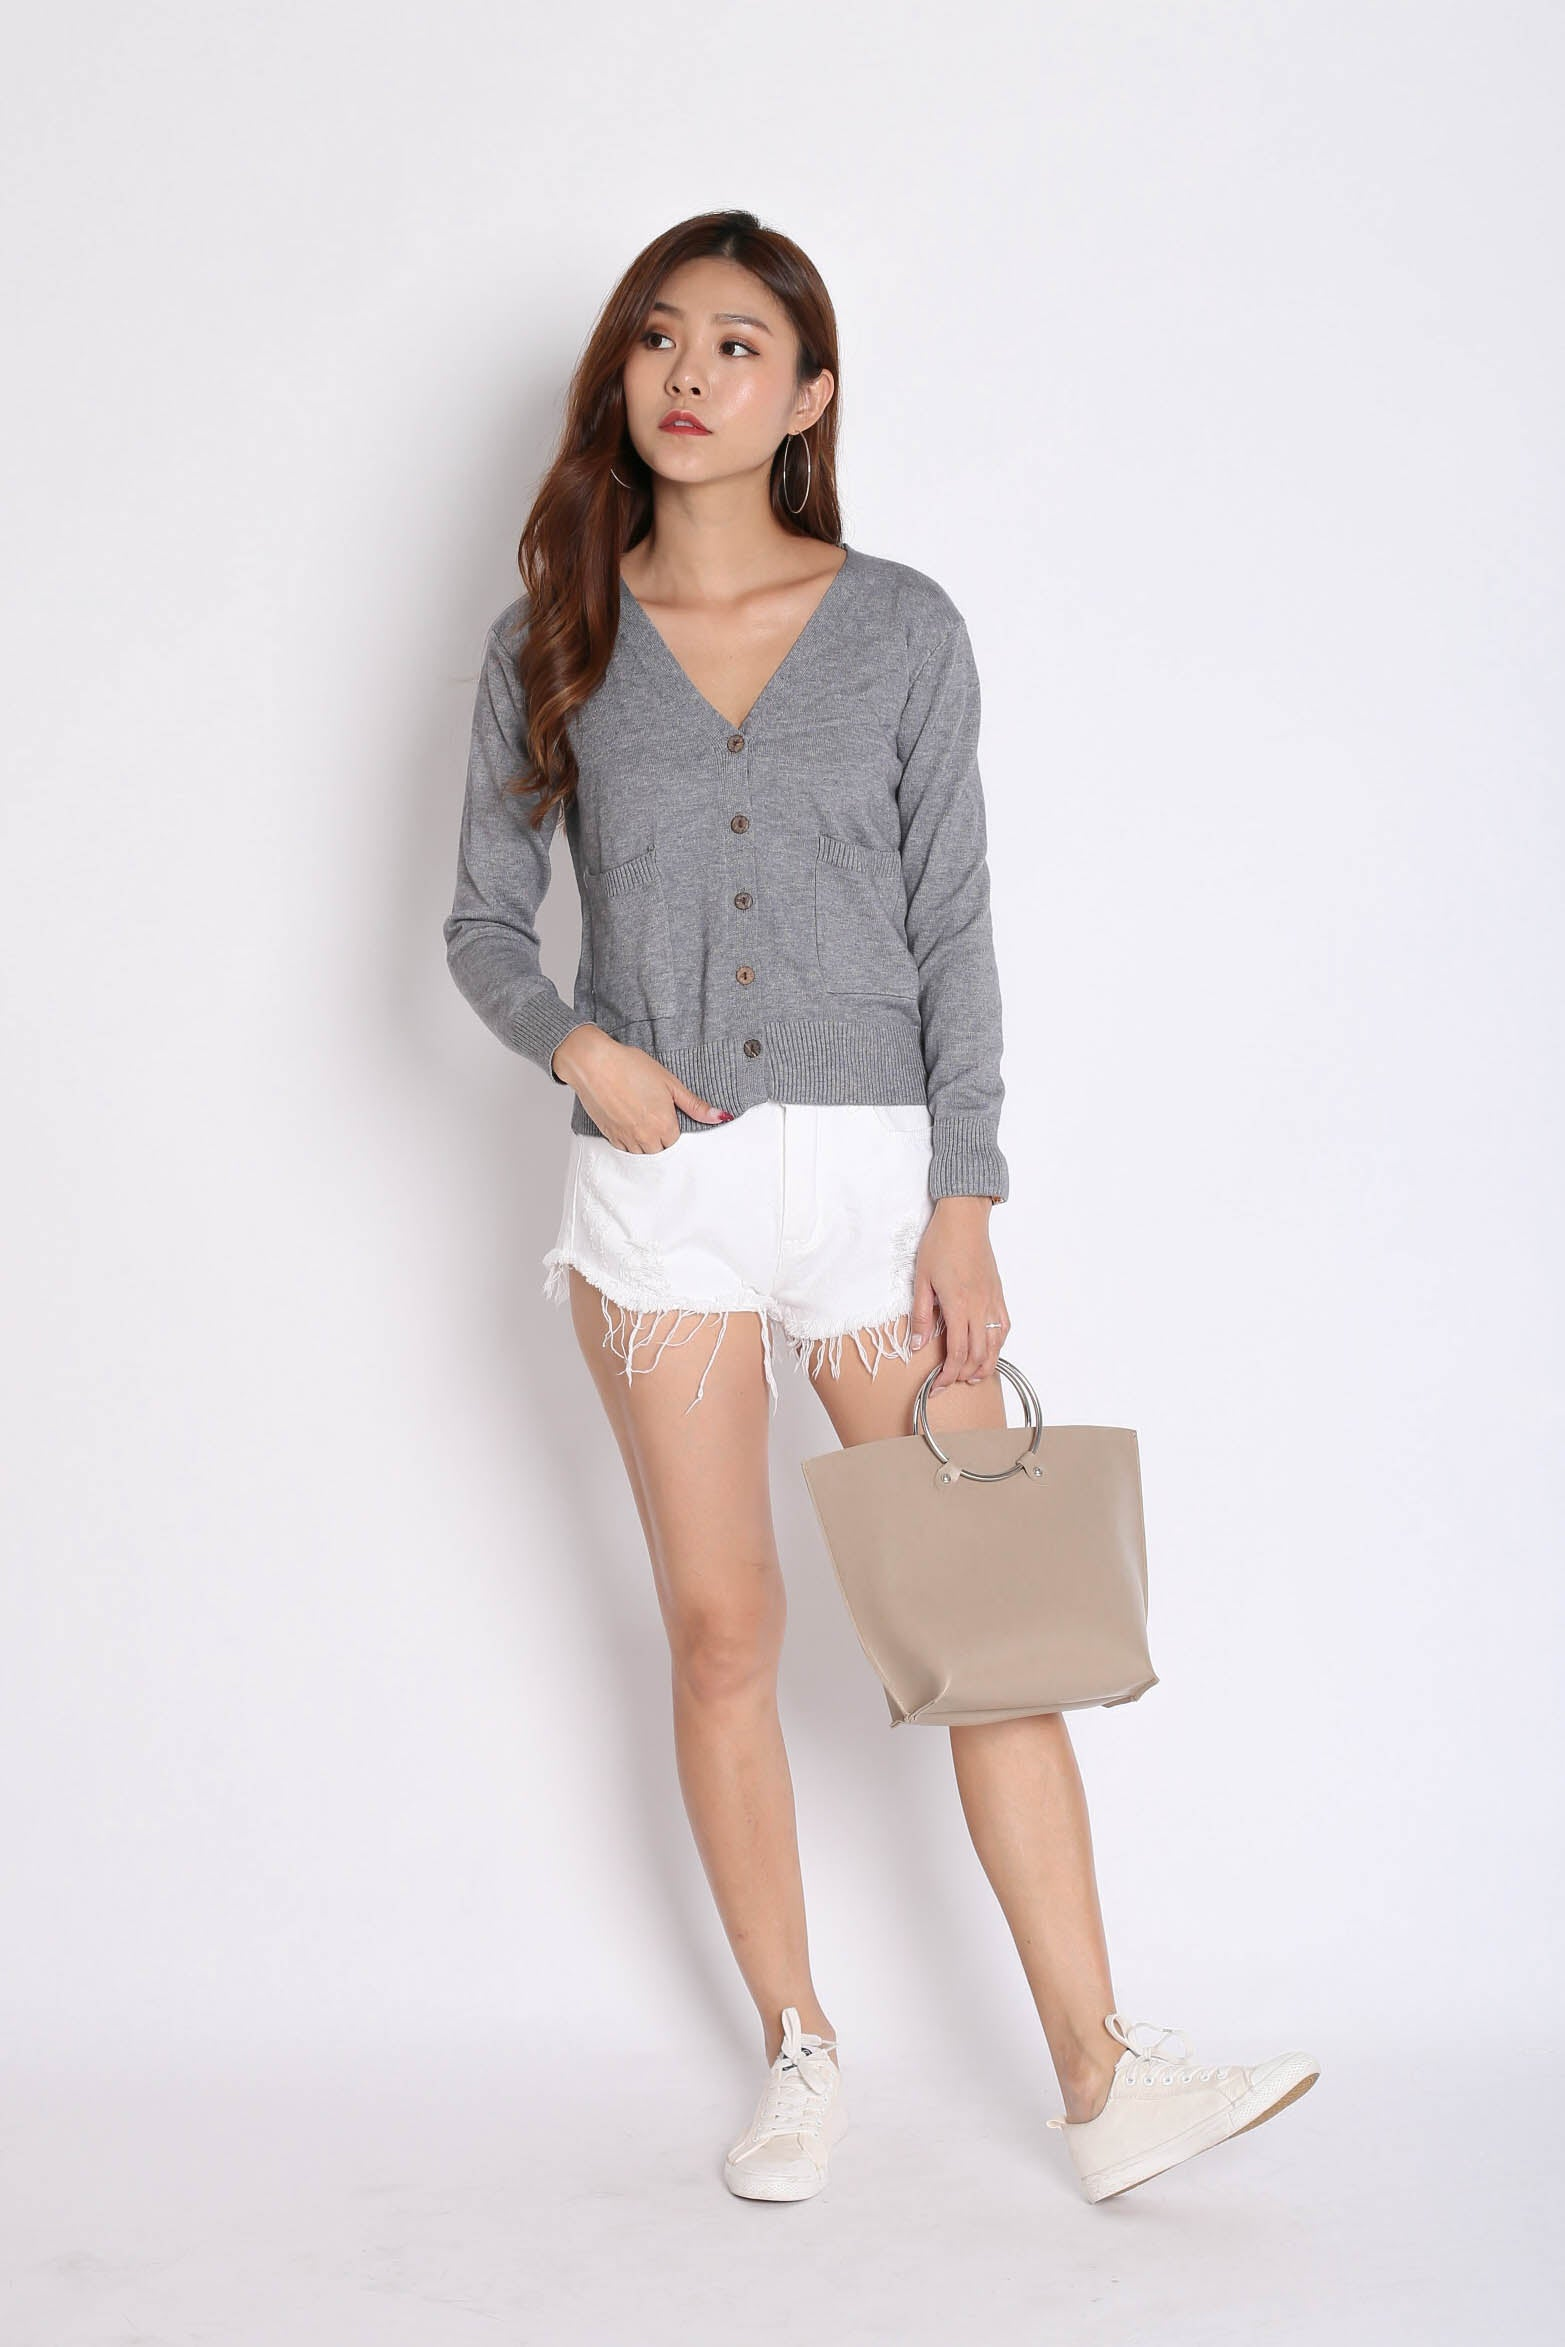 DULCE SOFT KNIT CARDIGAN IN GREY